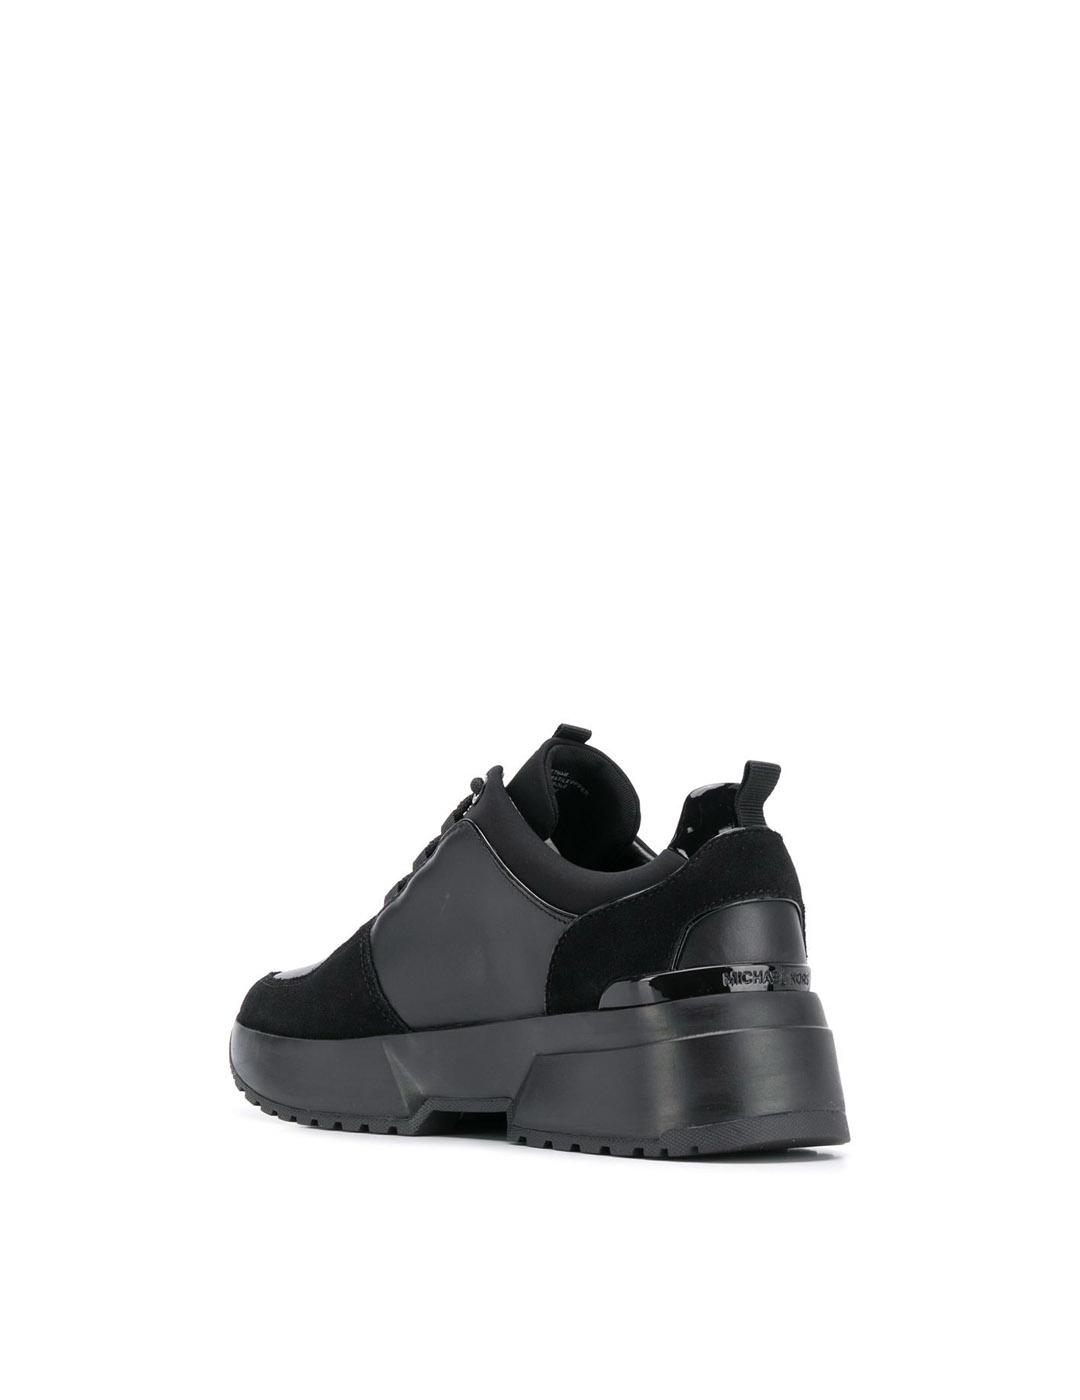 Sneakers Michael Kors negros Cosmo Trainer Leather